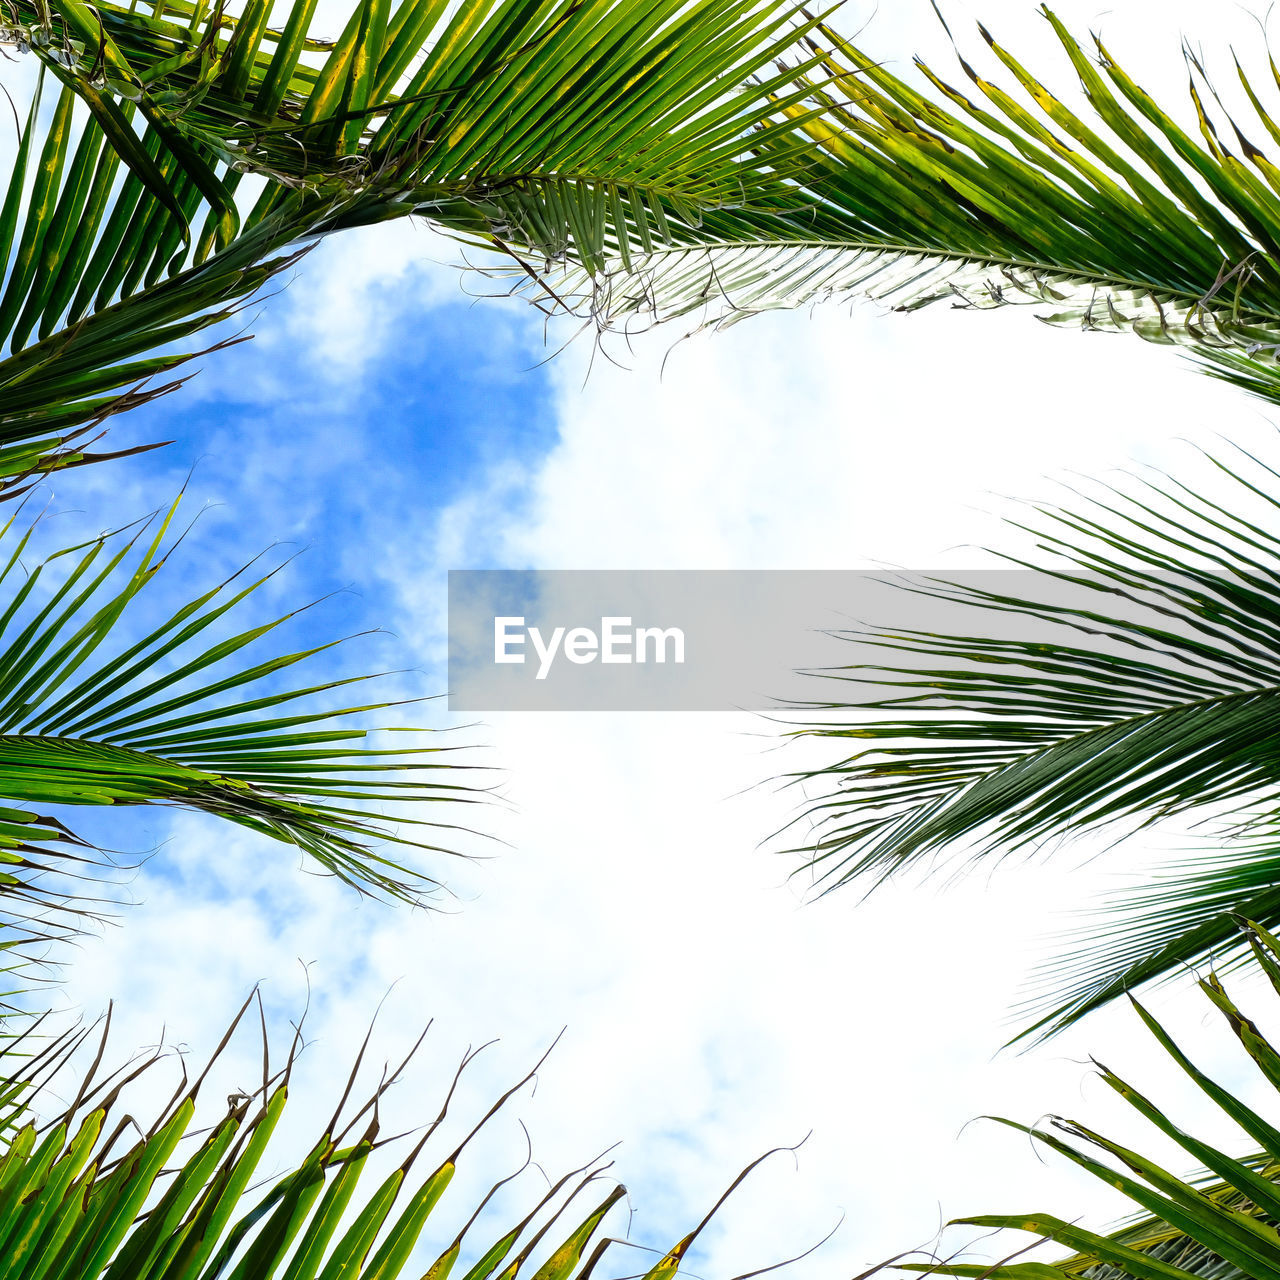 plant, tree, low angle view, sky, palm tree, growth, green color, leaf, palm leaf, nature, beauty in nature, tropical climate, day, no people, plant part, tranquility, branch, cloud - sky, outdoors, sunlight, pine tree, treetop, coniferous tree, coconut palm tree, directly below, tropical tree